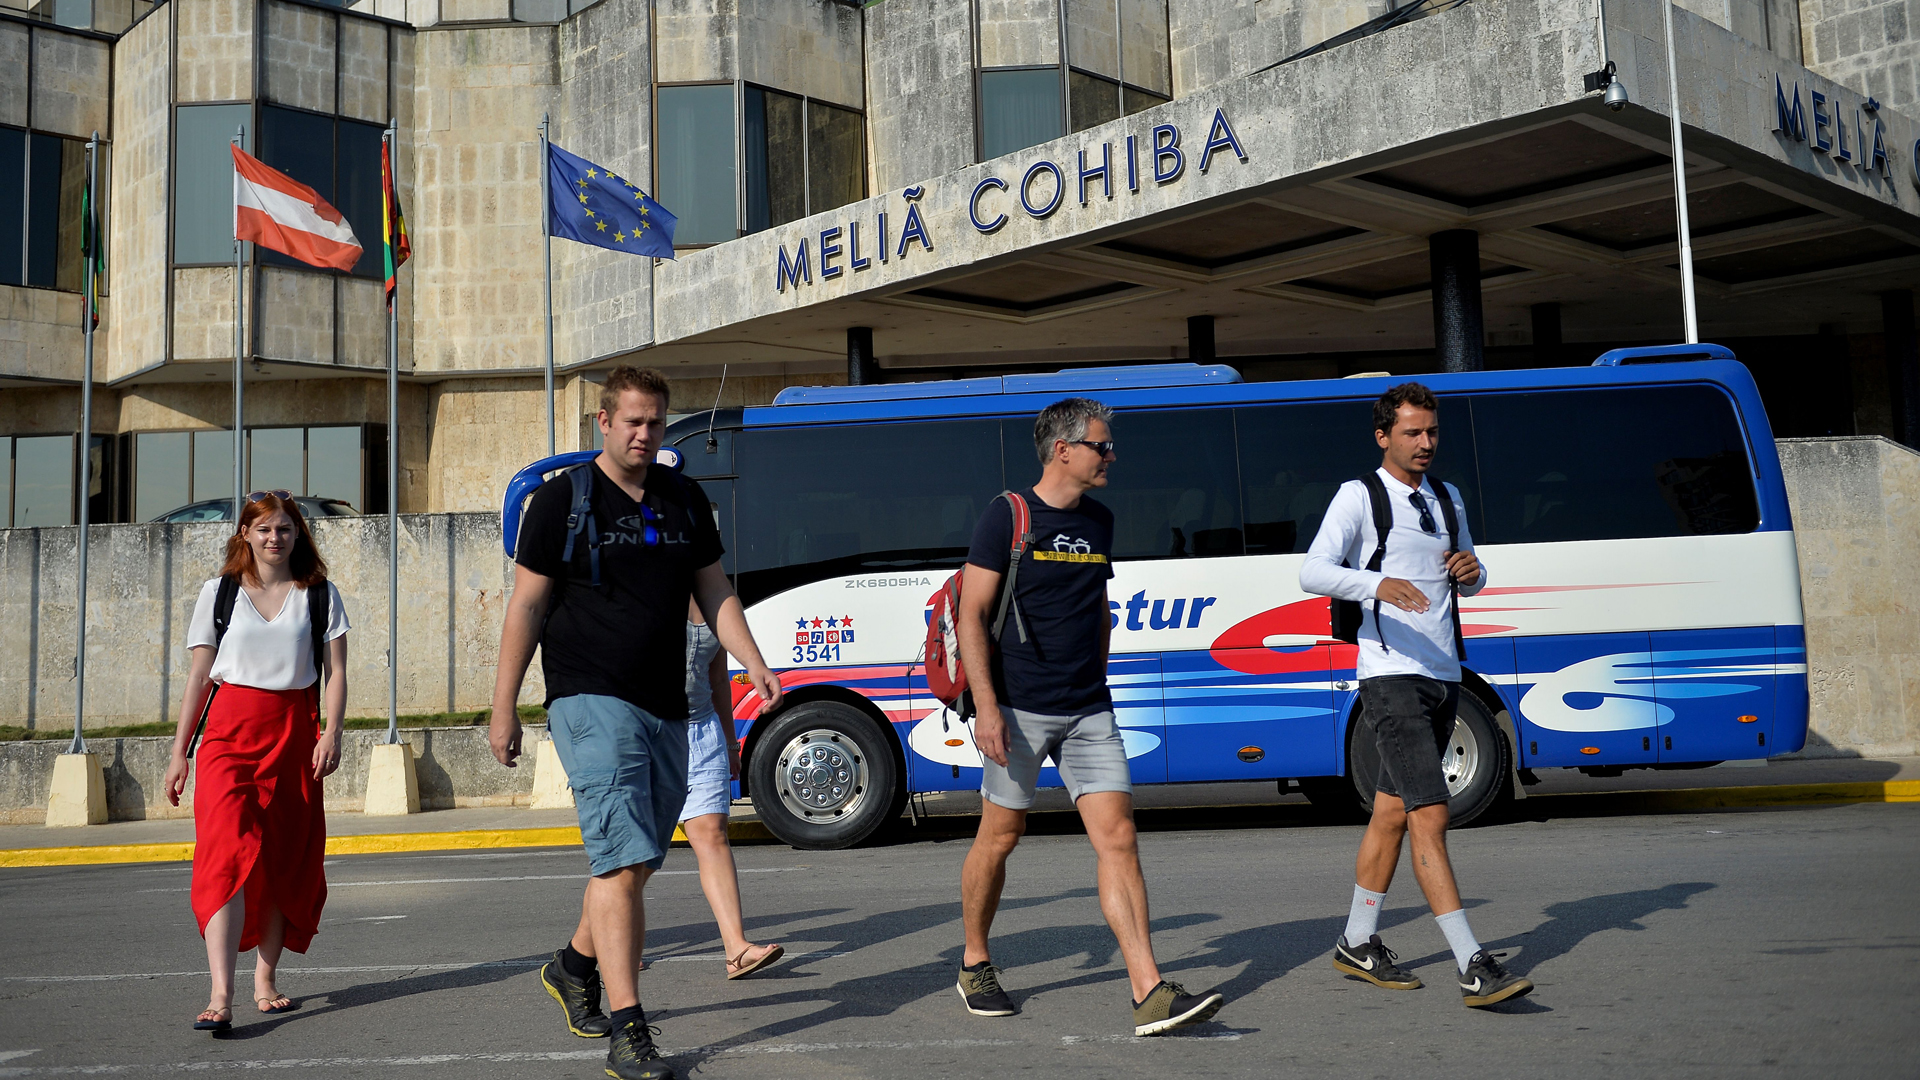 Tourists walk in front of the Melia Cohiba hotel in Havana on May 7, 2019. - Cuba welcomed 1.93 million visitors in the first four months of the year, a seven percent increase on 2018. Tourism represents the second most important economic activity in Cuba, behind medical services. (Credit: Yamil Lage/AFP/Getty Images)